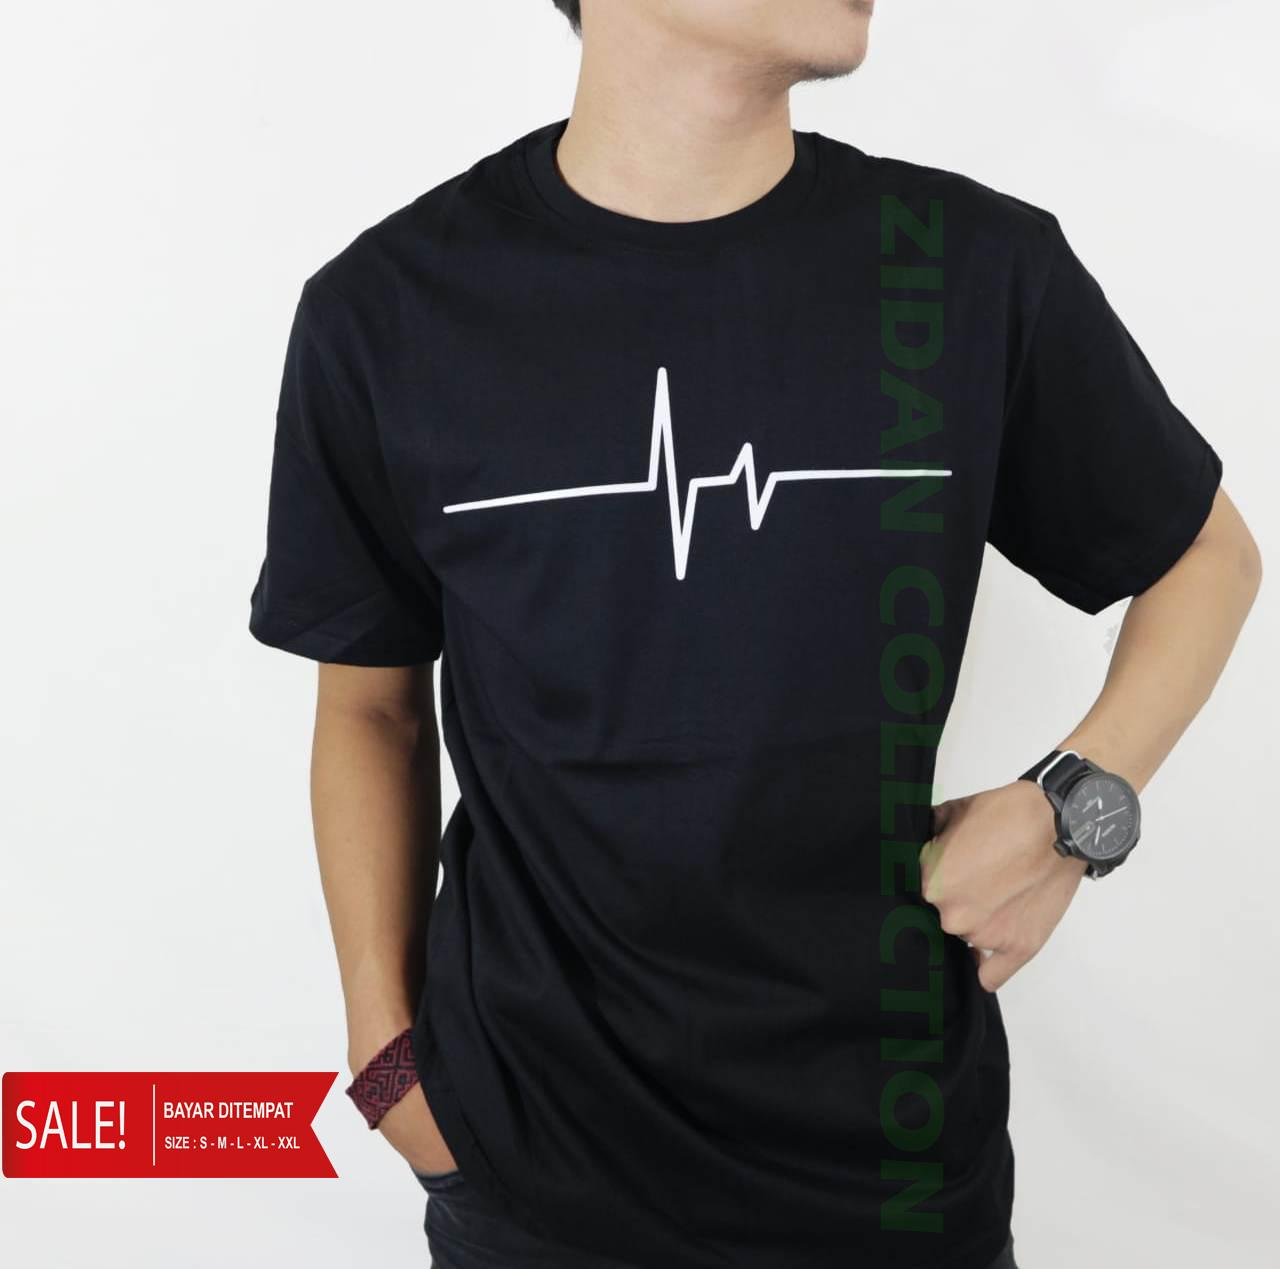 ZIDAN - Kaos Pria Distro DETAK JANTUNG T-shirt fashion 100% soft cotton  combed 275852b044